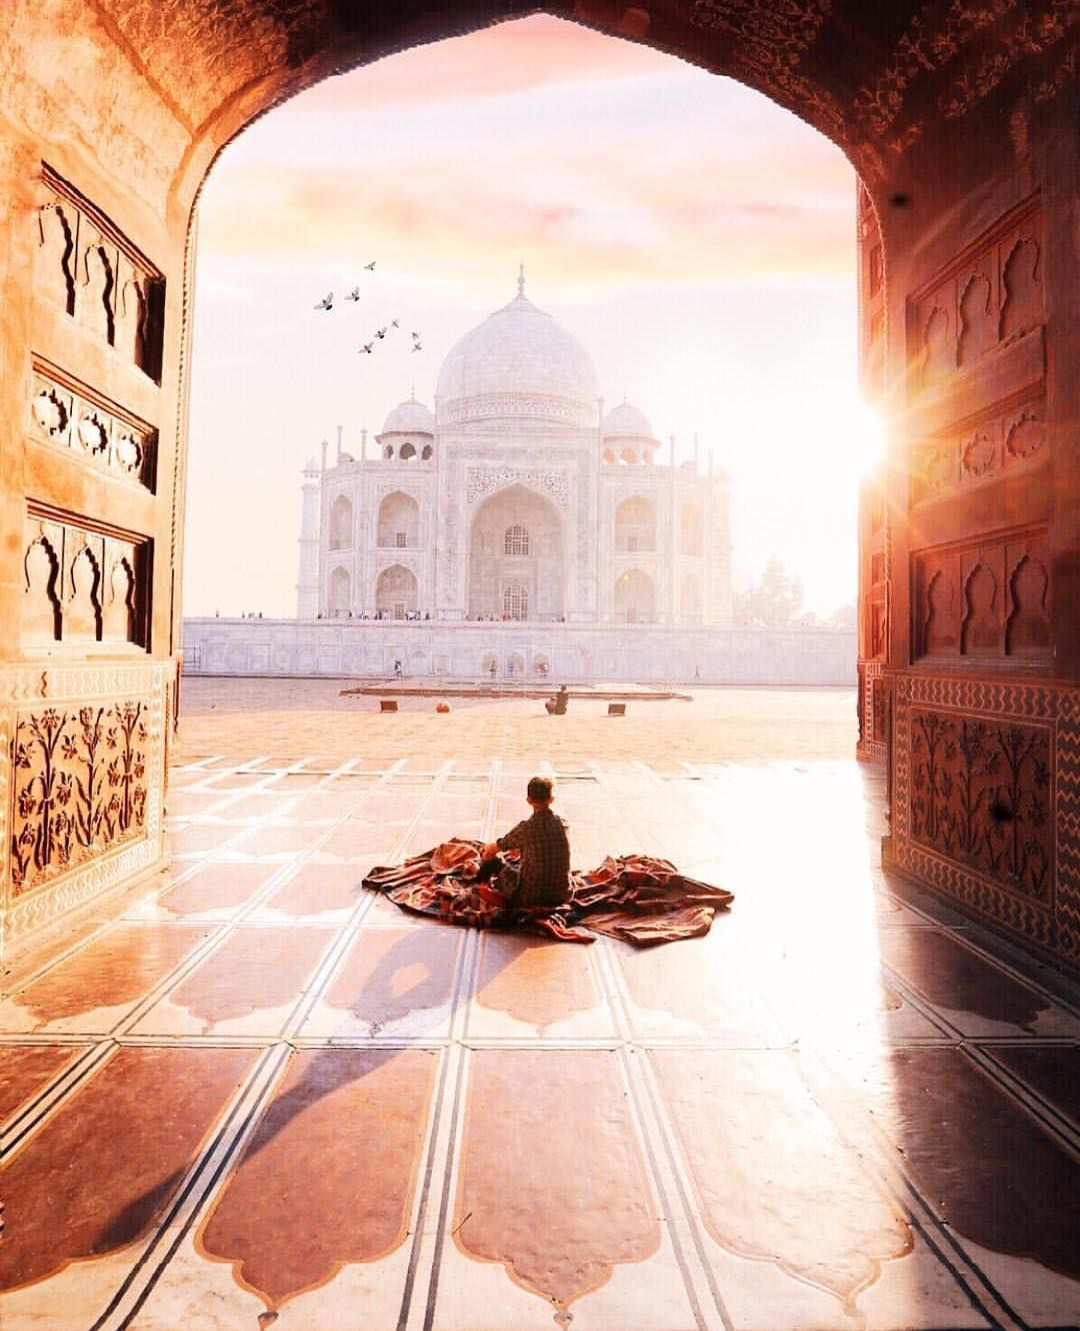 The Taj Mahal, Agra - India ✨❤️❤️❤️✨ Picture by ✨✨@jamesrelfdyer✨✨ . #wonderful_places for a feature ❤️